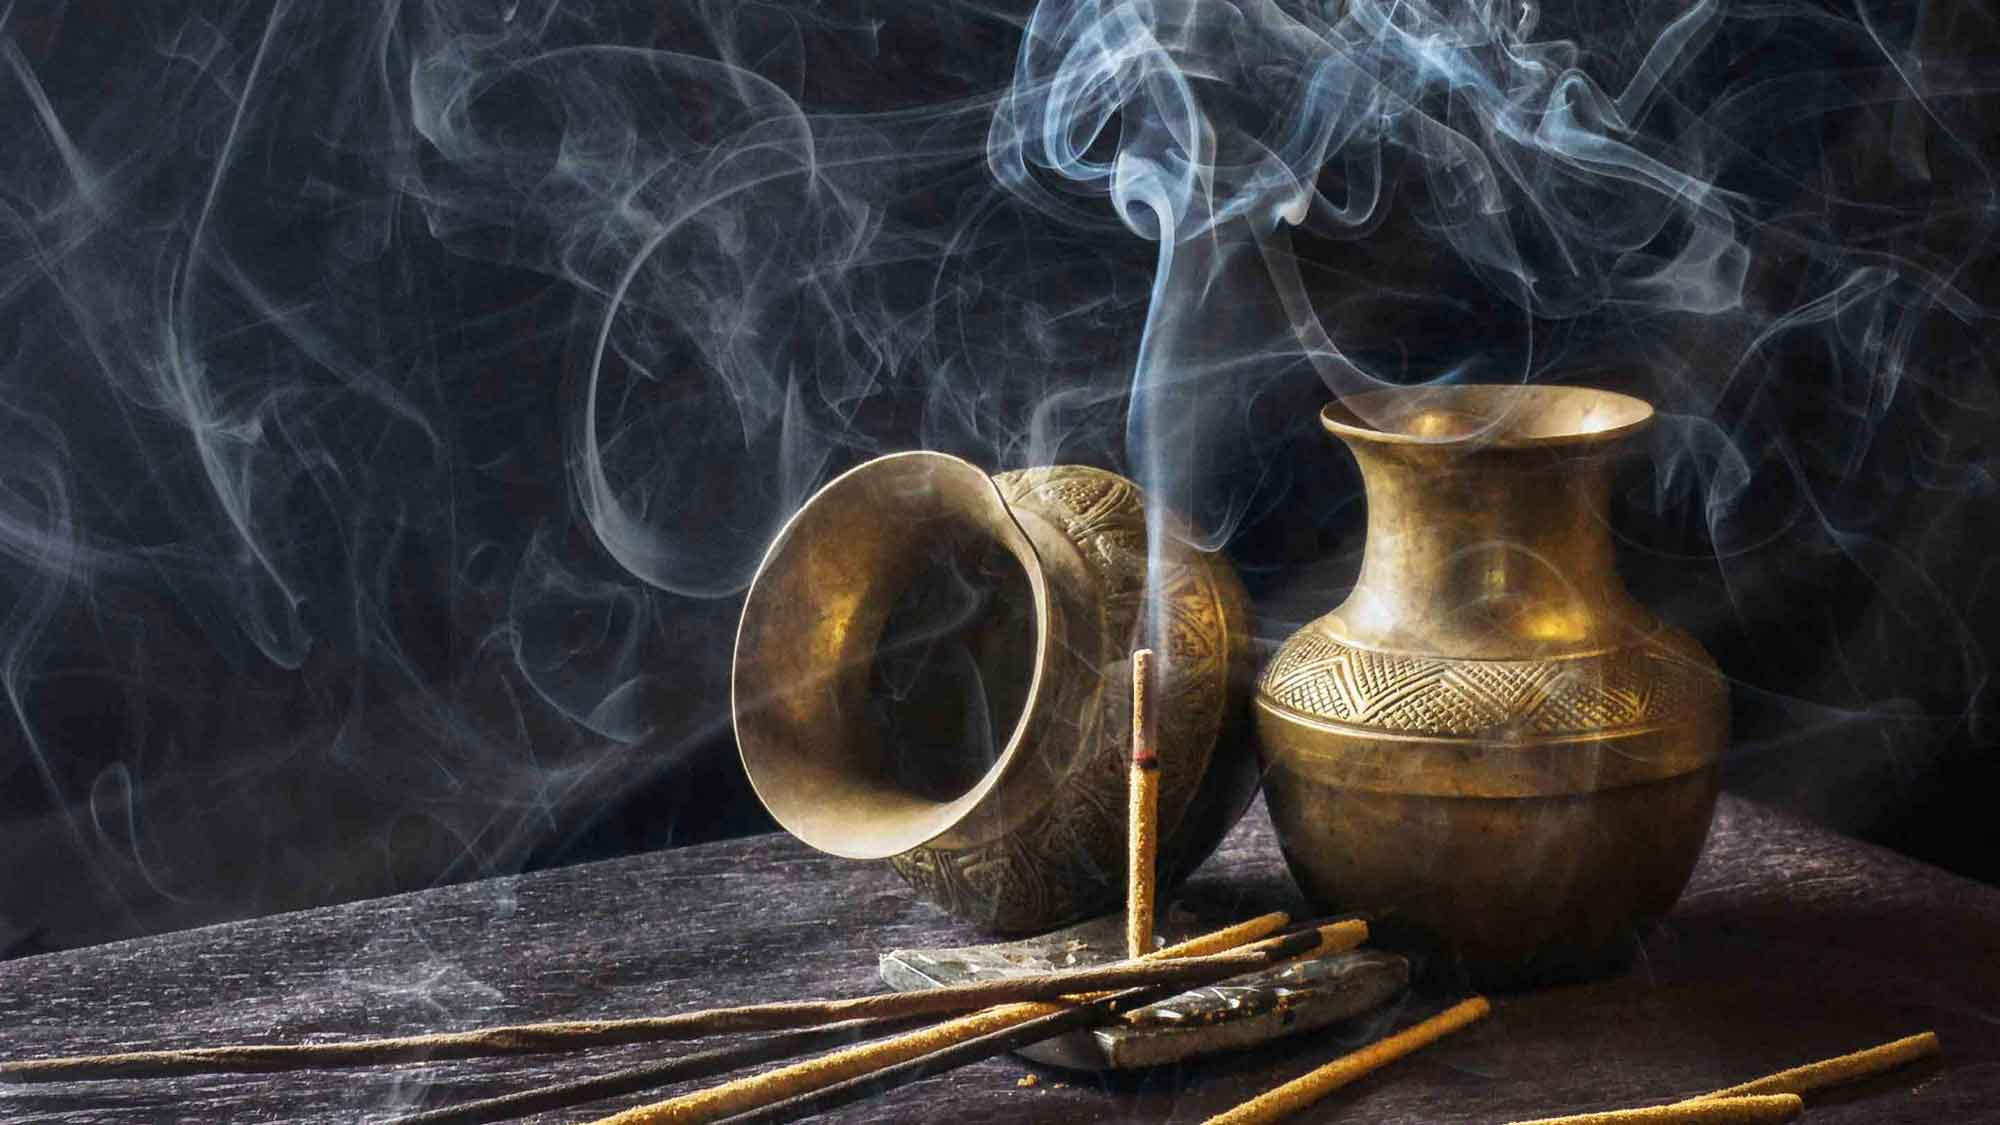 Two small golden jugs and a burning incense on a wooden table